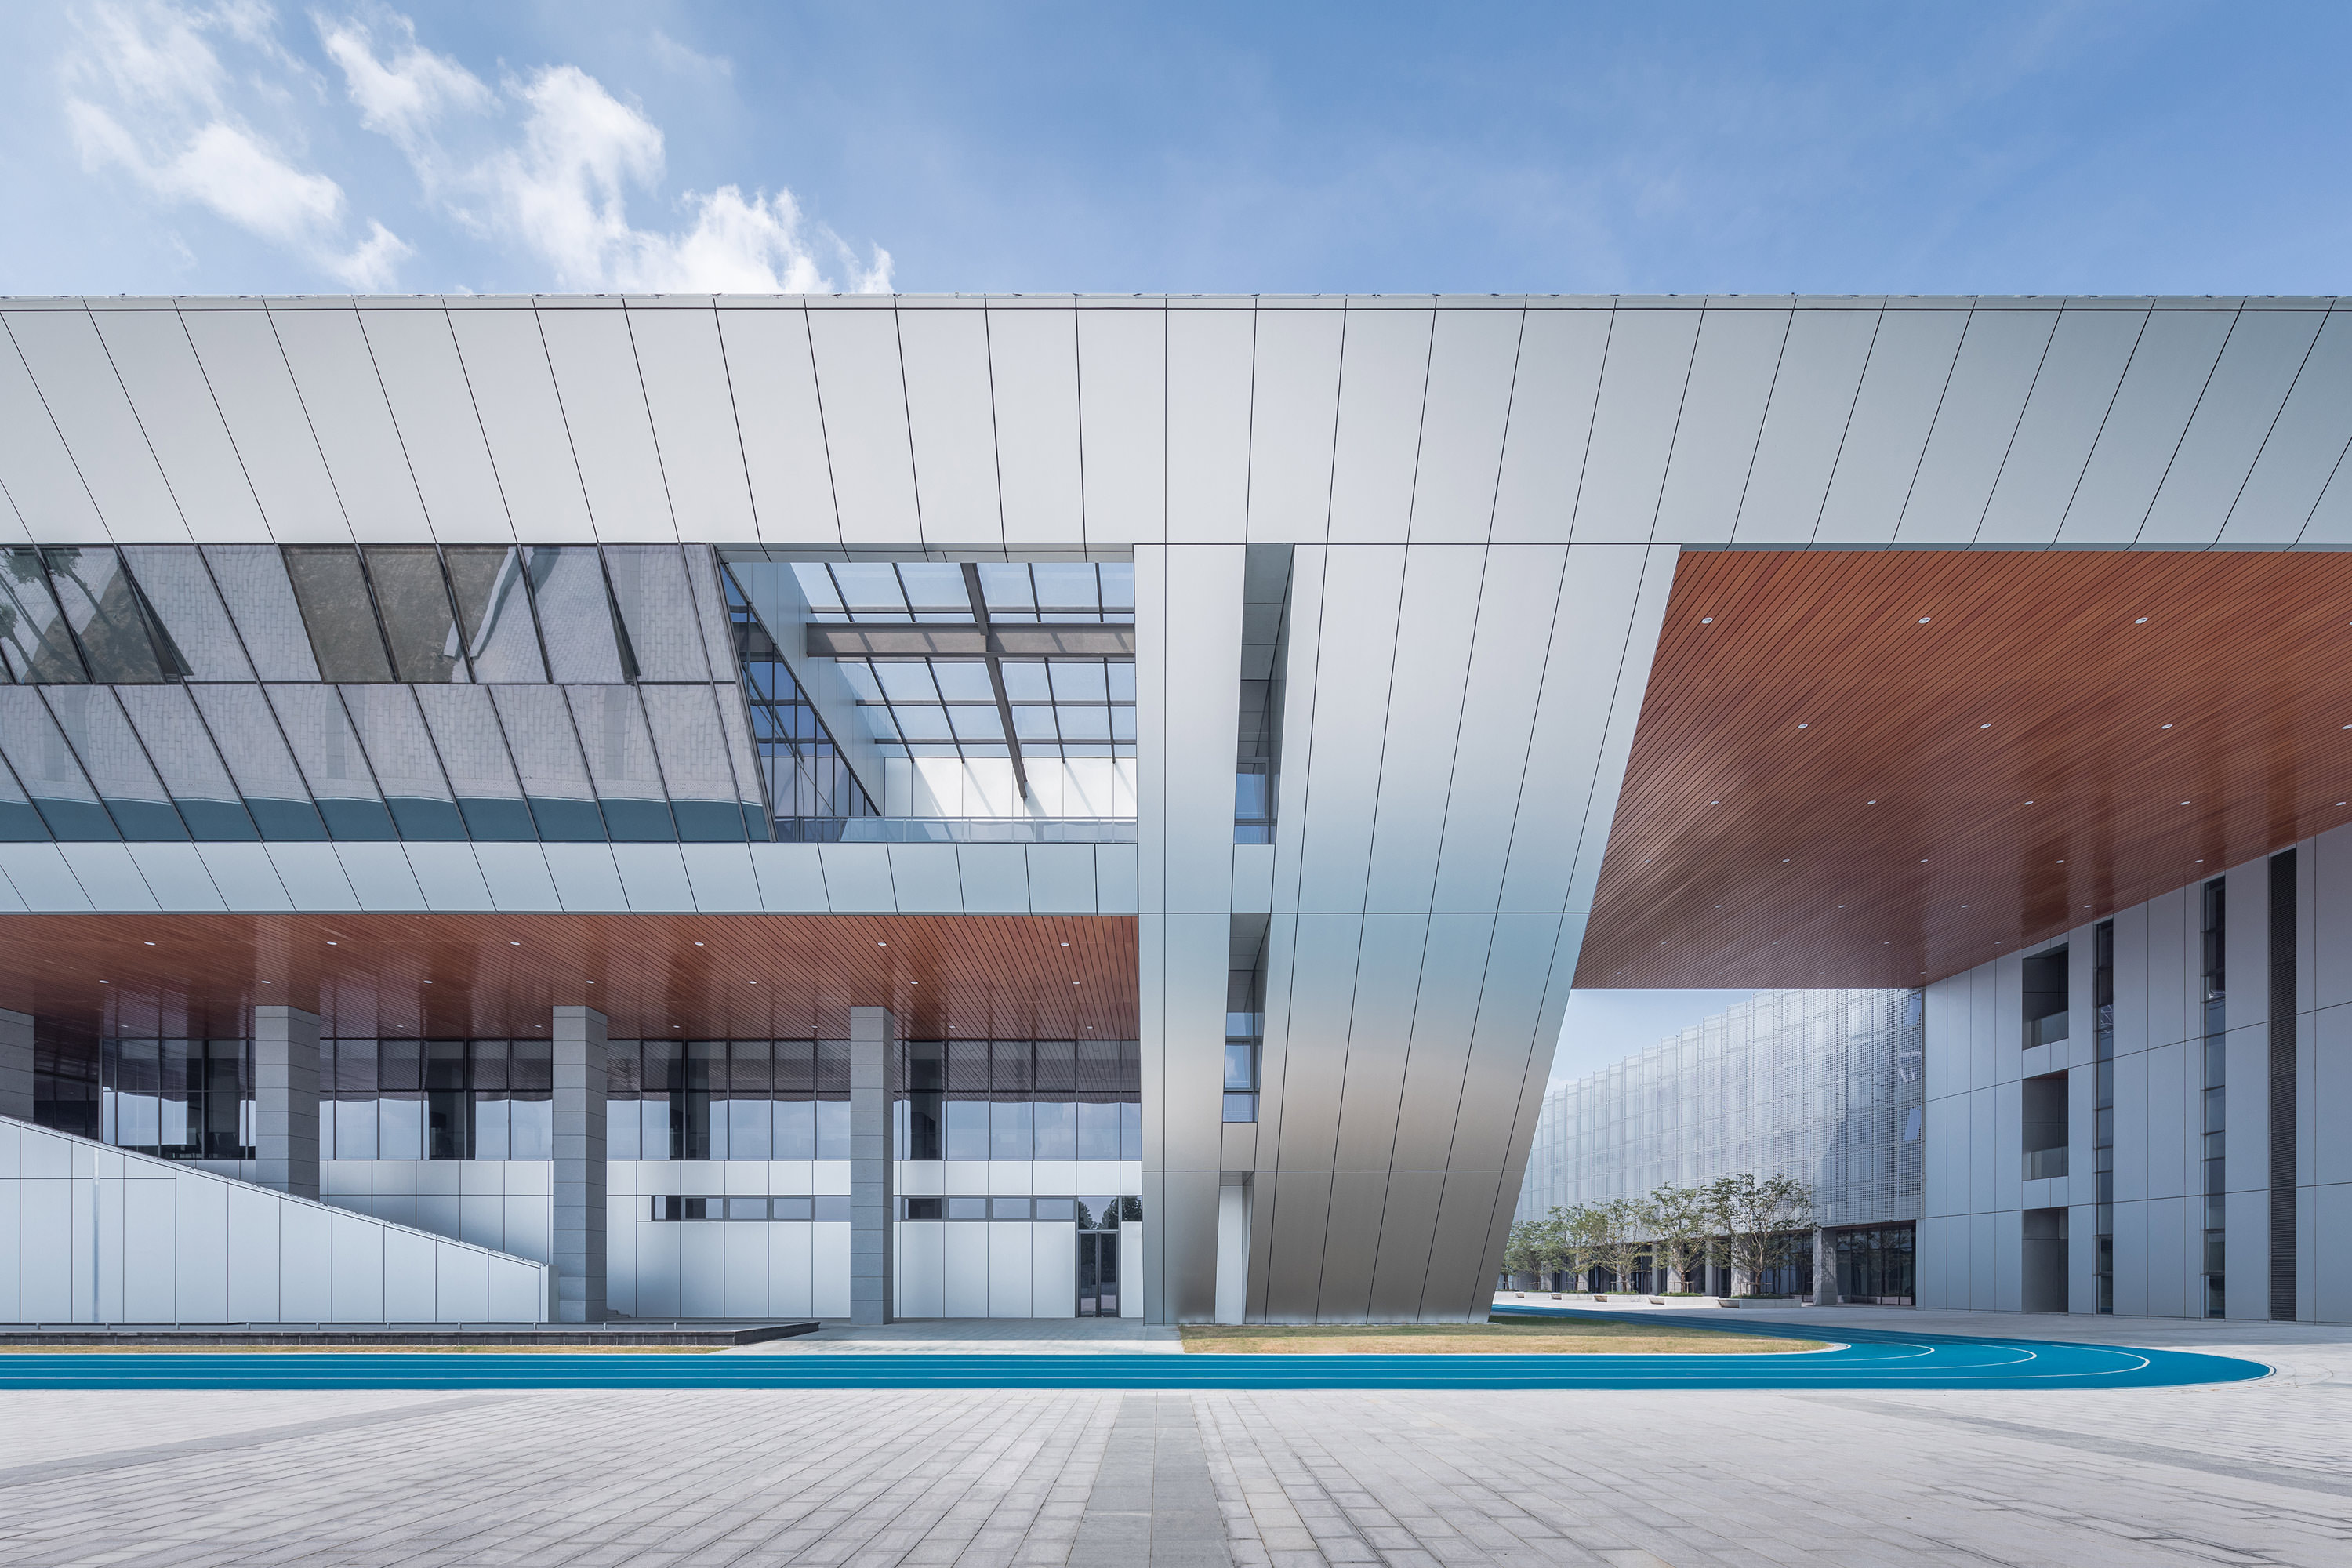 Taizhou Medical Hi-tech Zone Sports & Culture Center